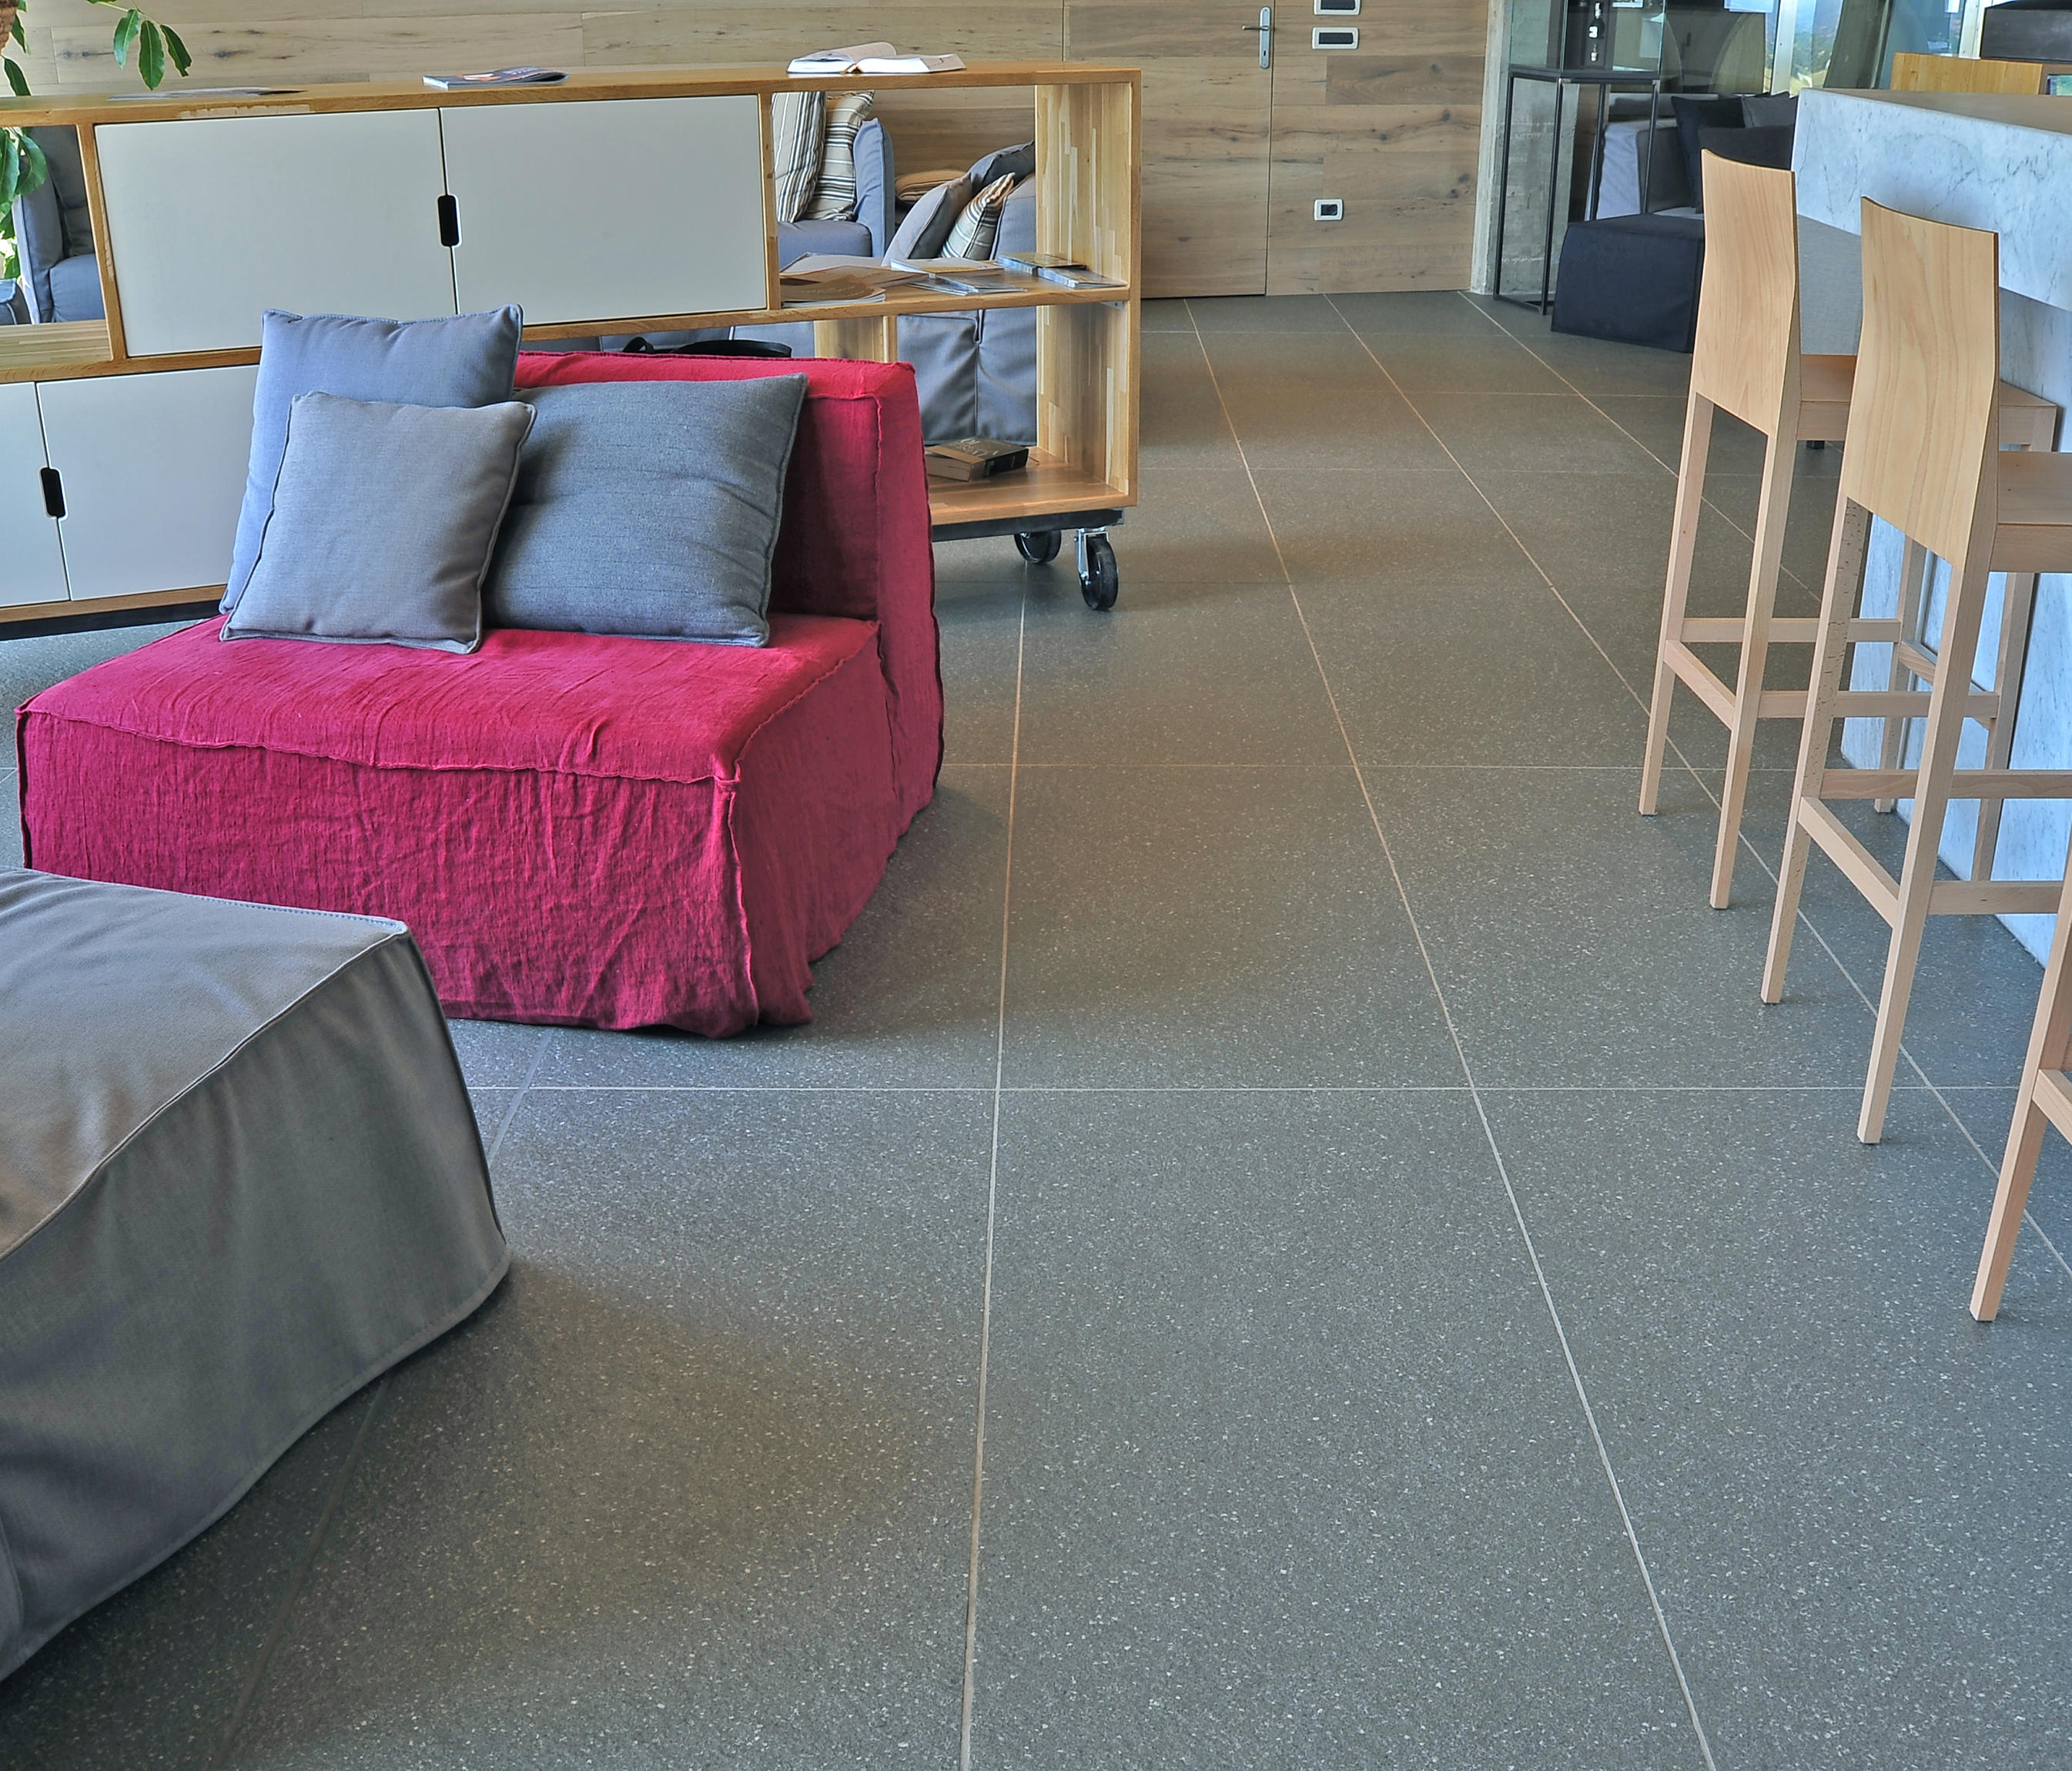 Ecotech ecodark naturale tiles from floor gres by florim ecotech ecodark naturale by floor gres by florim dailygadgetfo Image collections